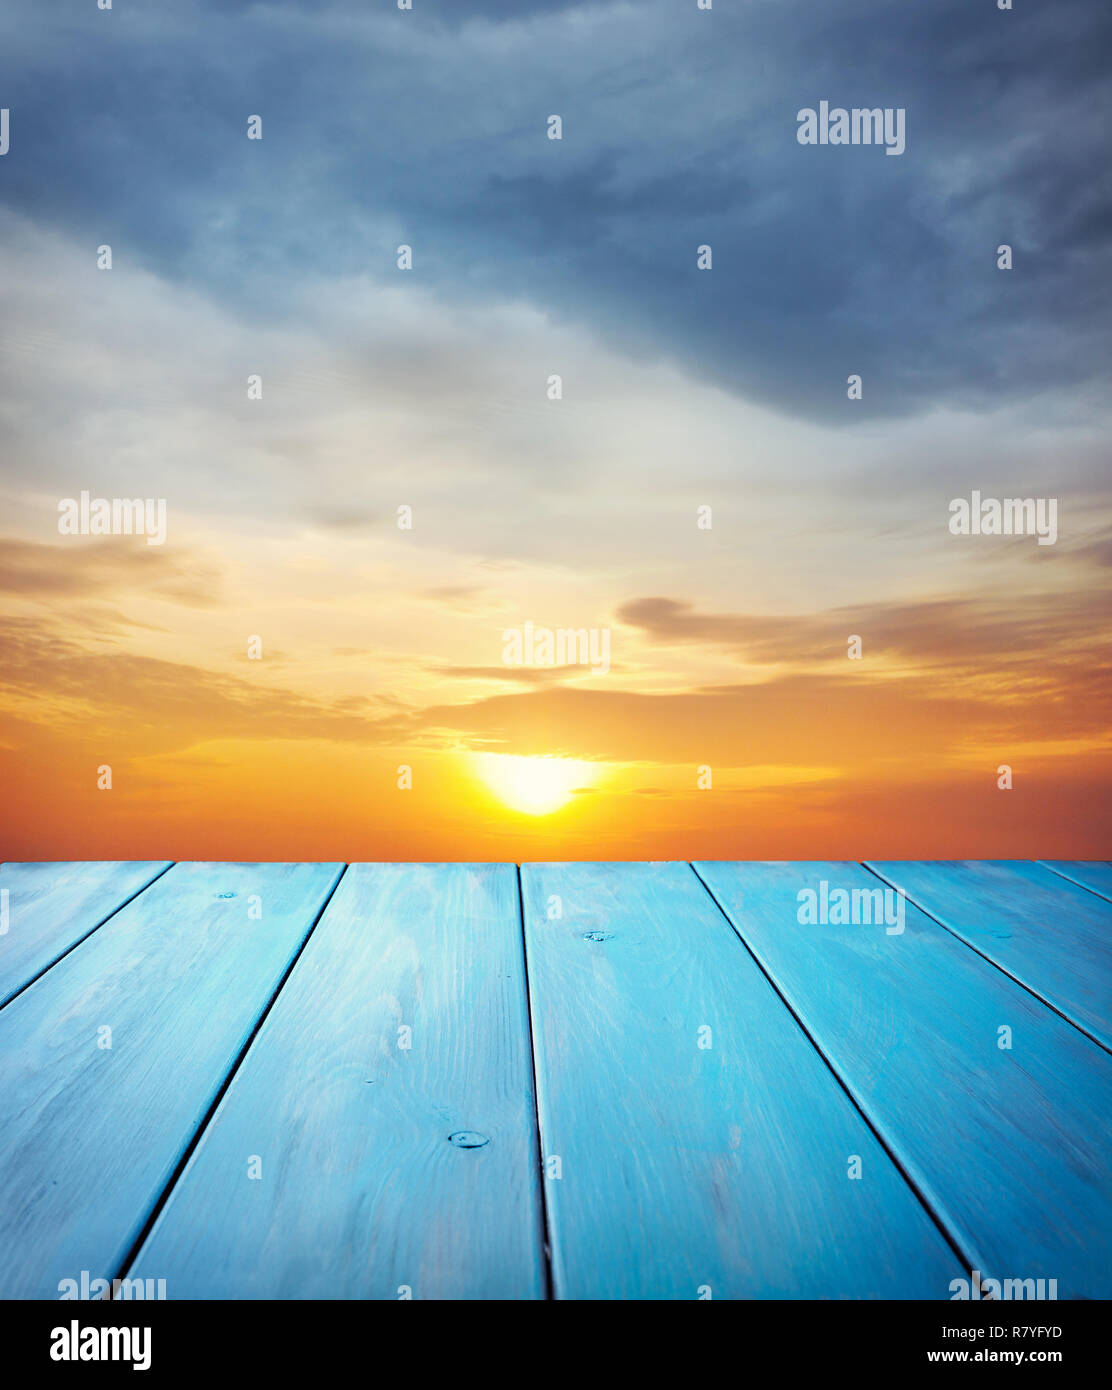 Blue wooden table at orange sunset sky background - Stock Image